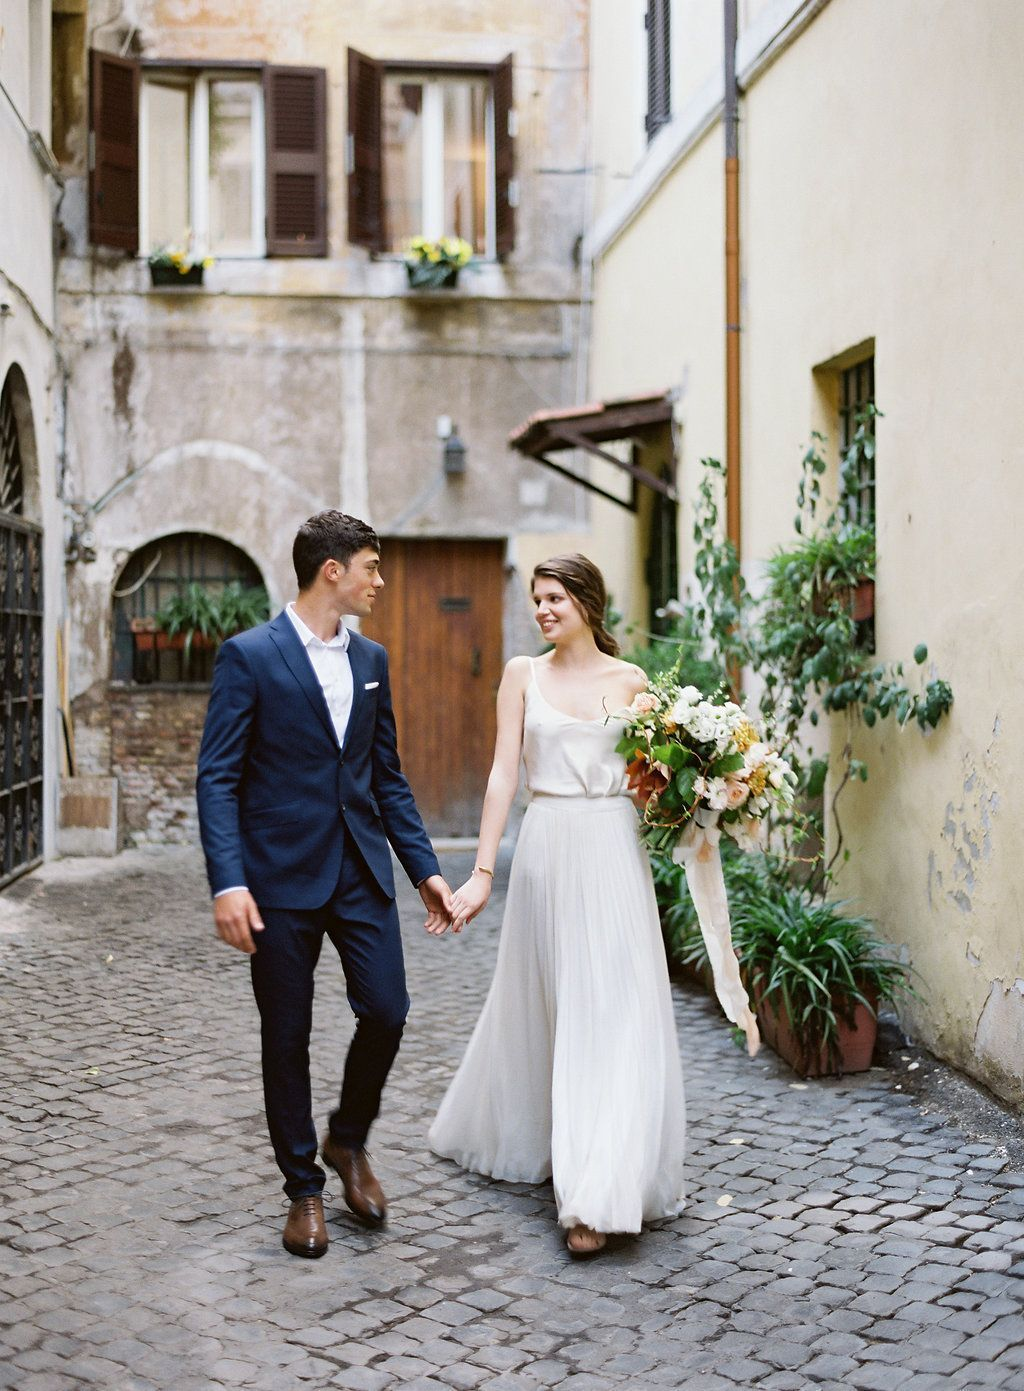 Vicki_Grafton_Photography_Rome_Italy_Wedding_Photographer_2017-135